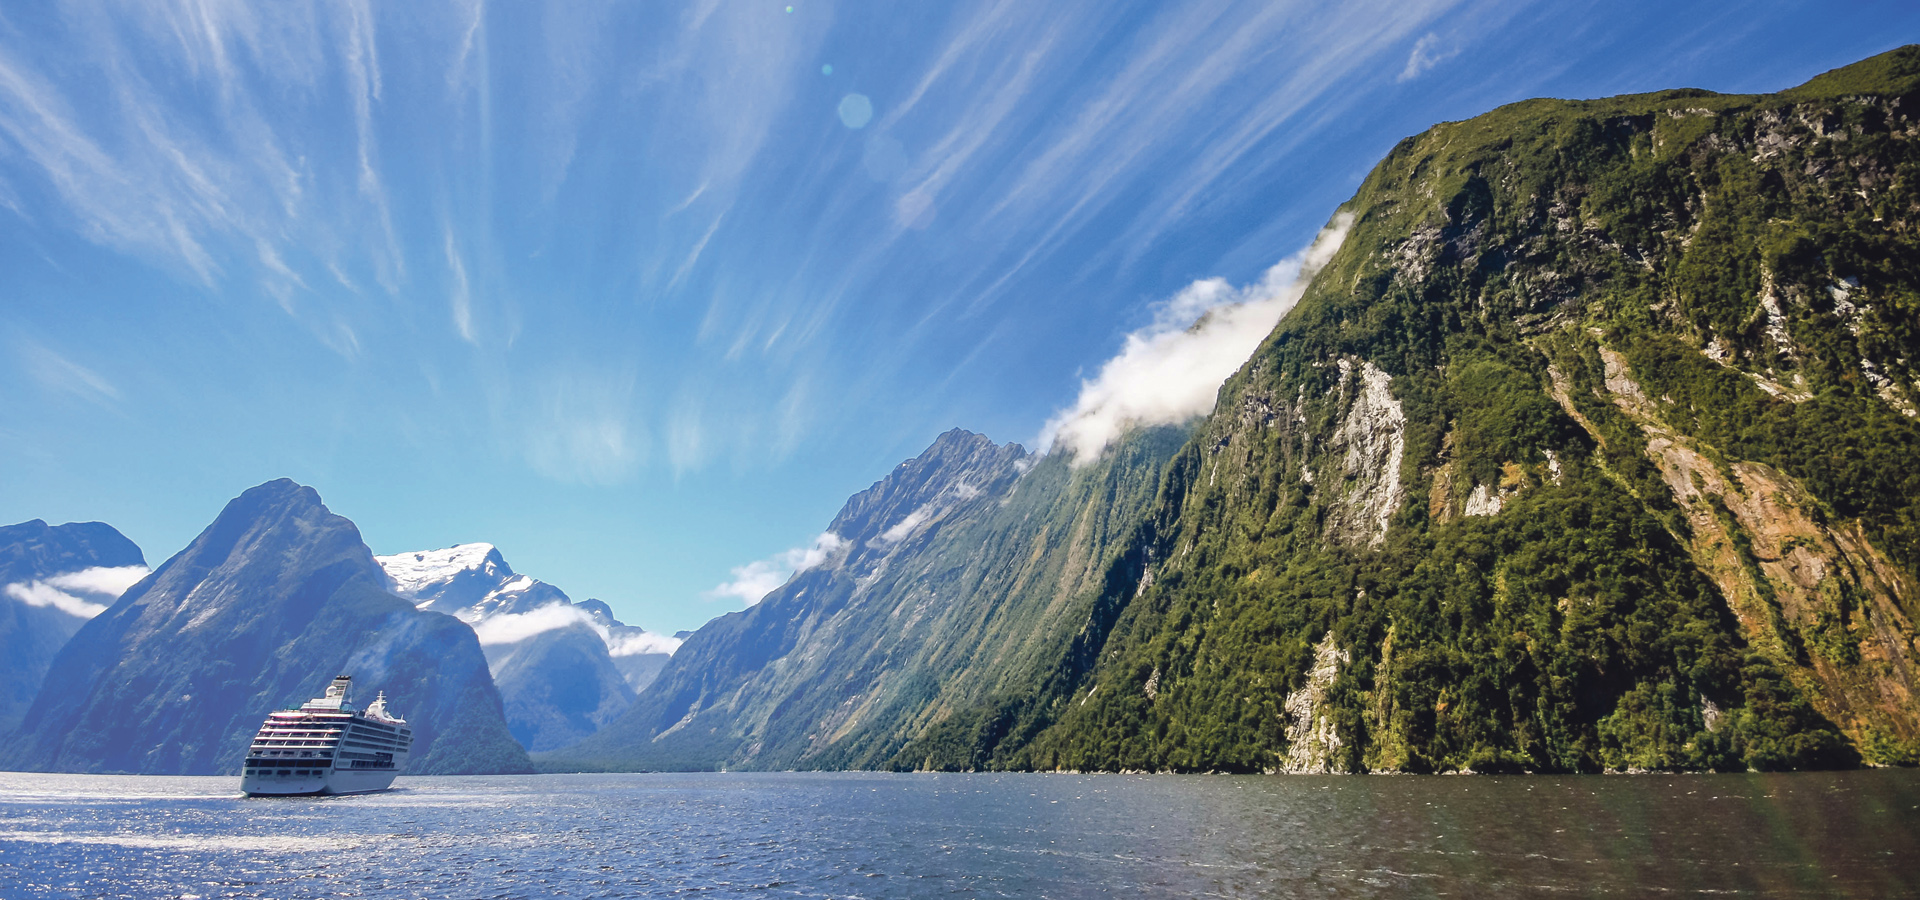 Discover Magical Milford Sound and the Fjords of New Zealand